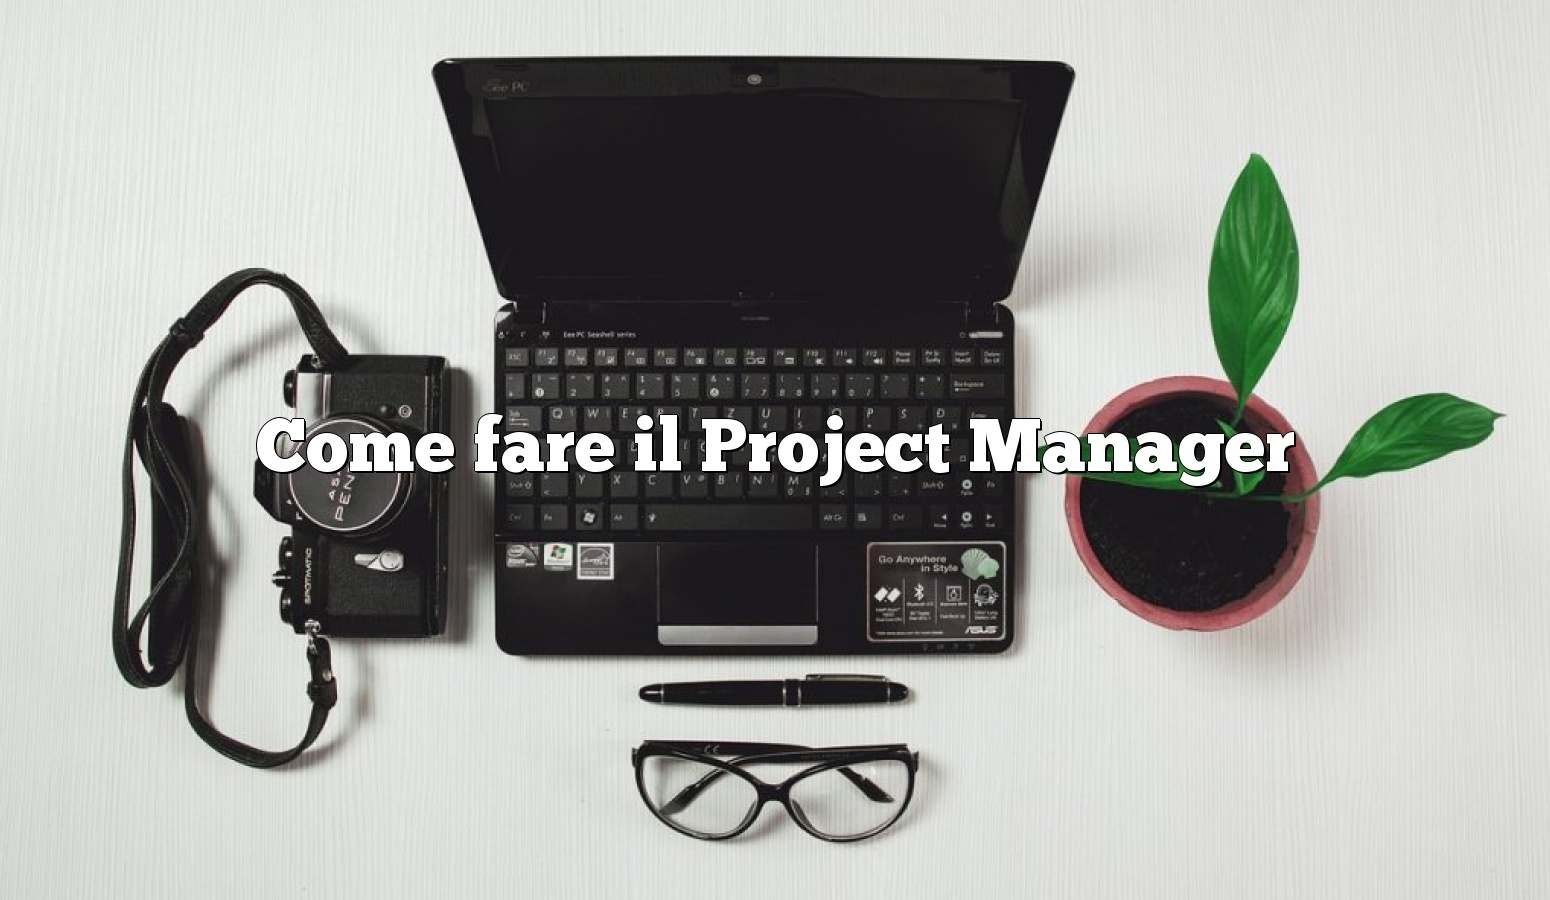 Come fare il Project Manager